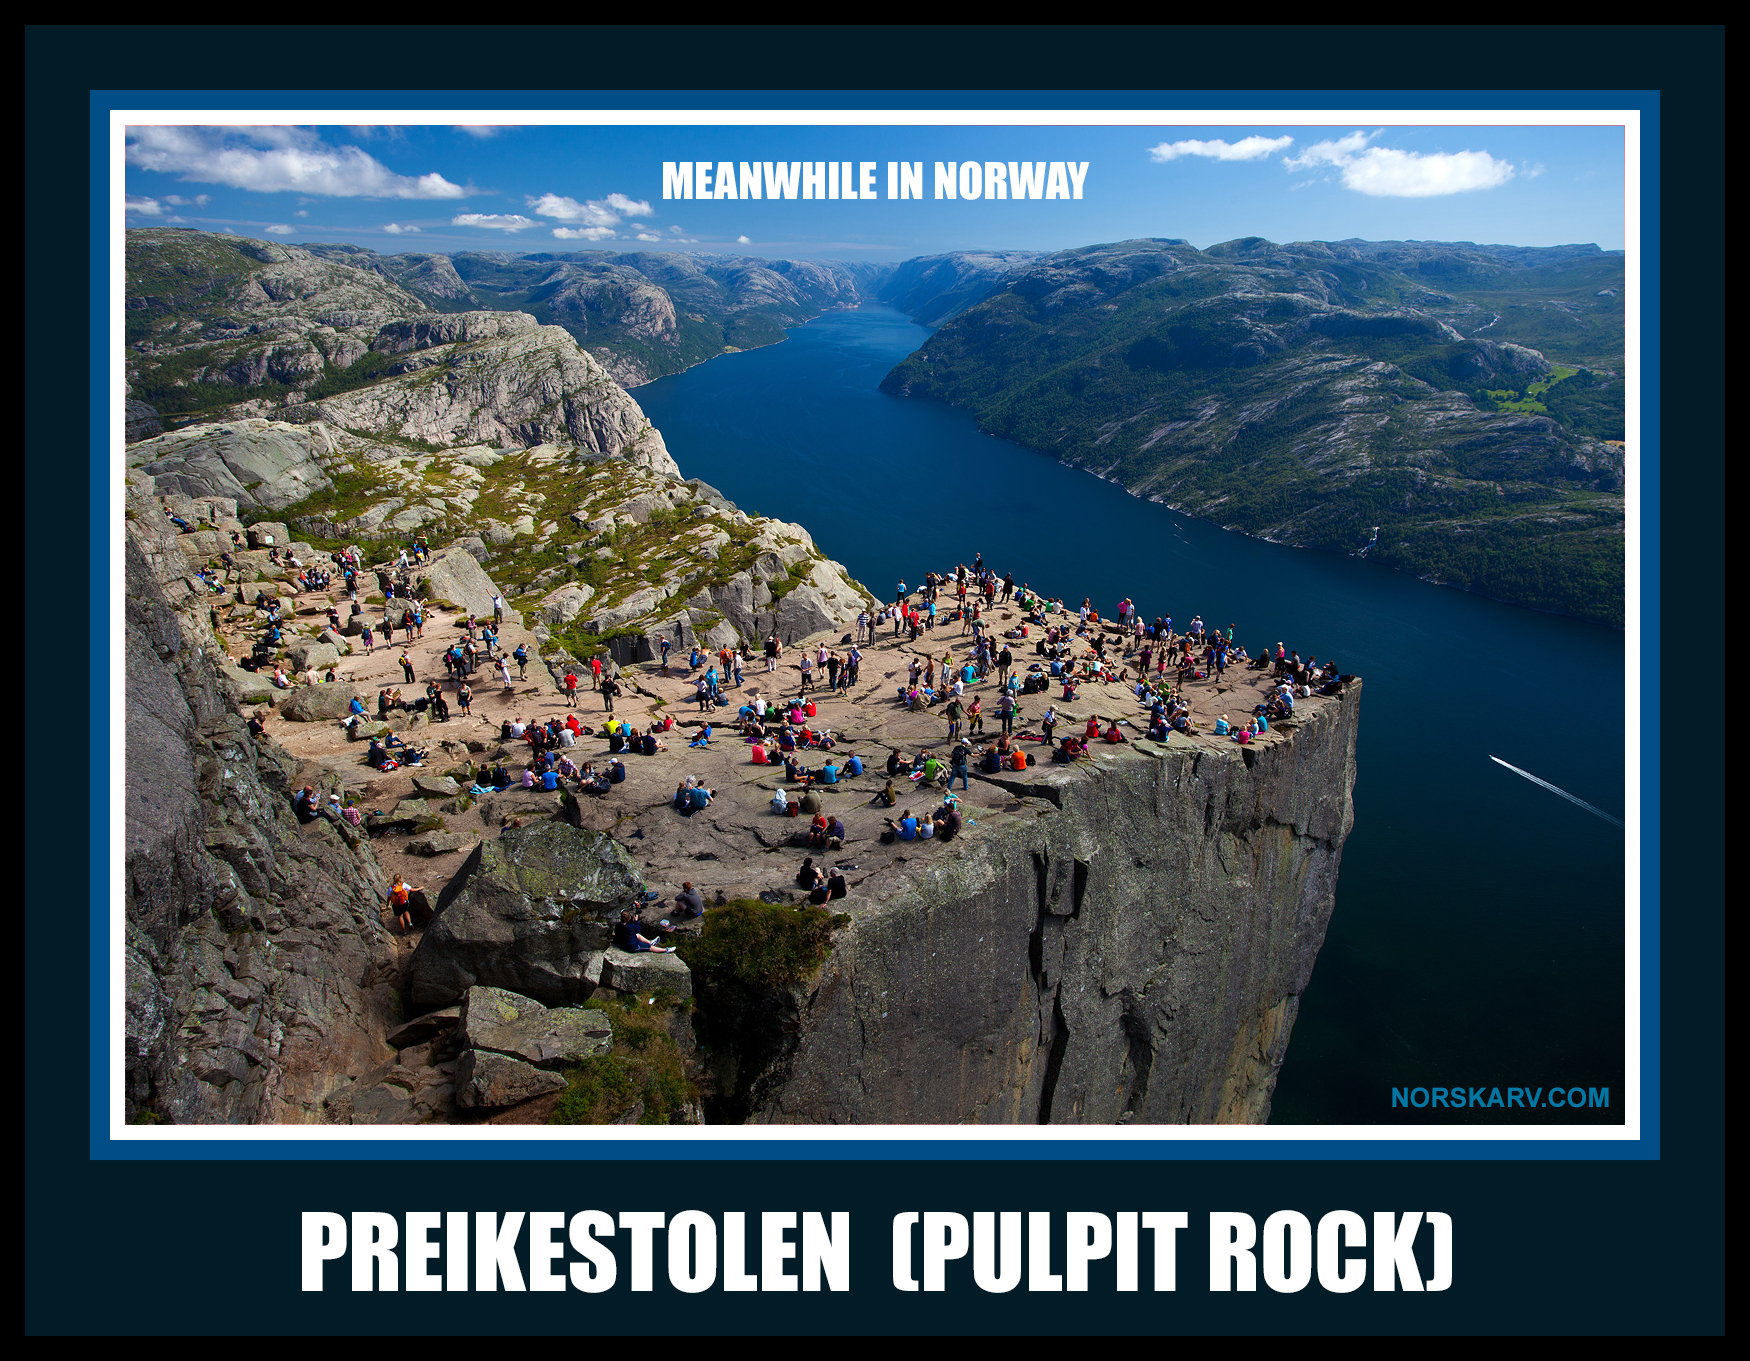 meanwhile in norway meme preikestolen pulpit rock norwegian norskarv alt for norge beautiful fjord